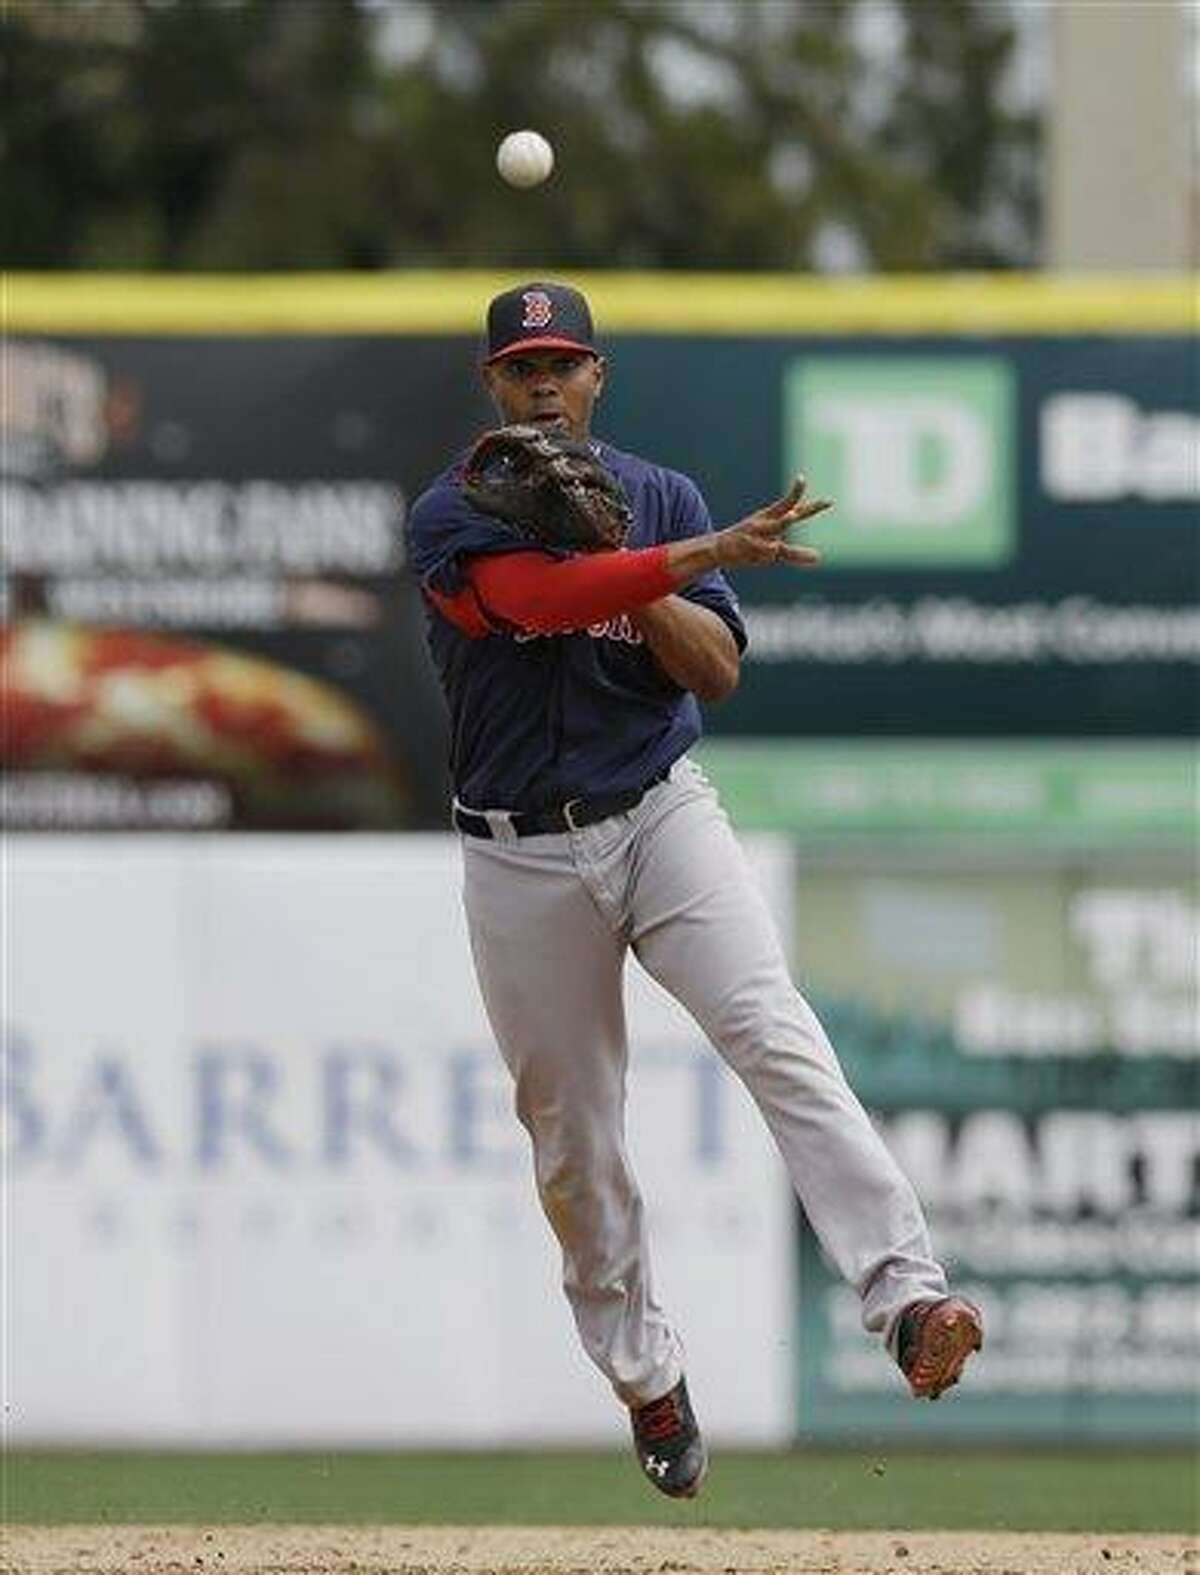 Boston Red Sox shortstop Xander Bogaerts (72) throws to first for a putout in a spring training baseball game against the Toronto Blue Jays in Dunedin, Fla., Friday, March 22, 2013. (AP Photo/Kathy Willens)